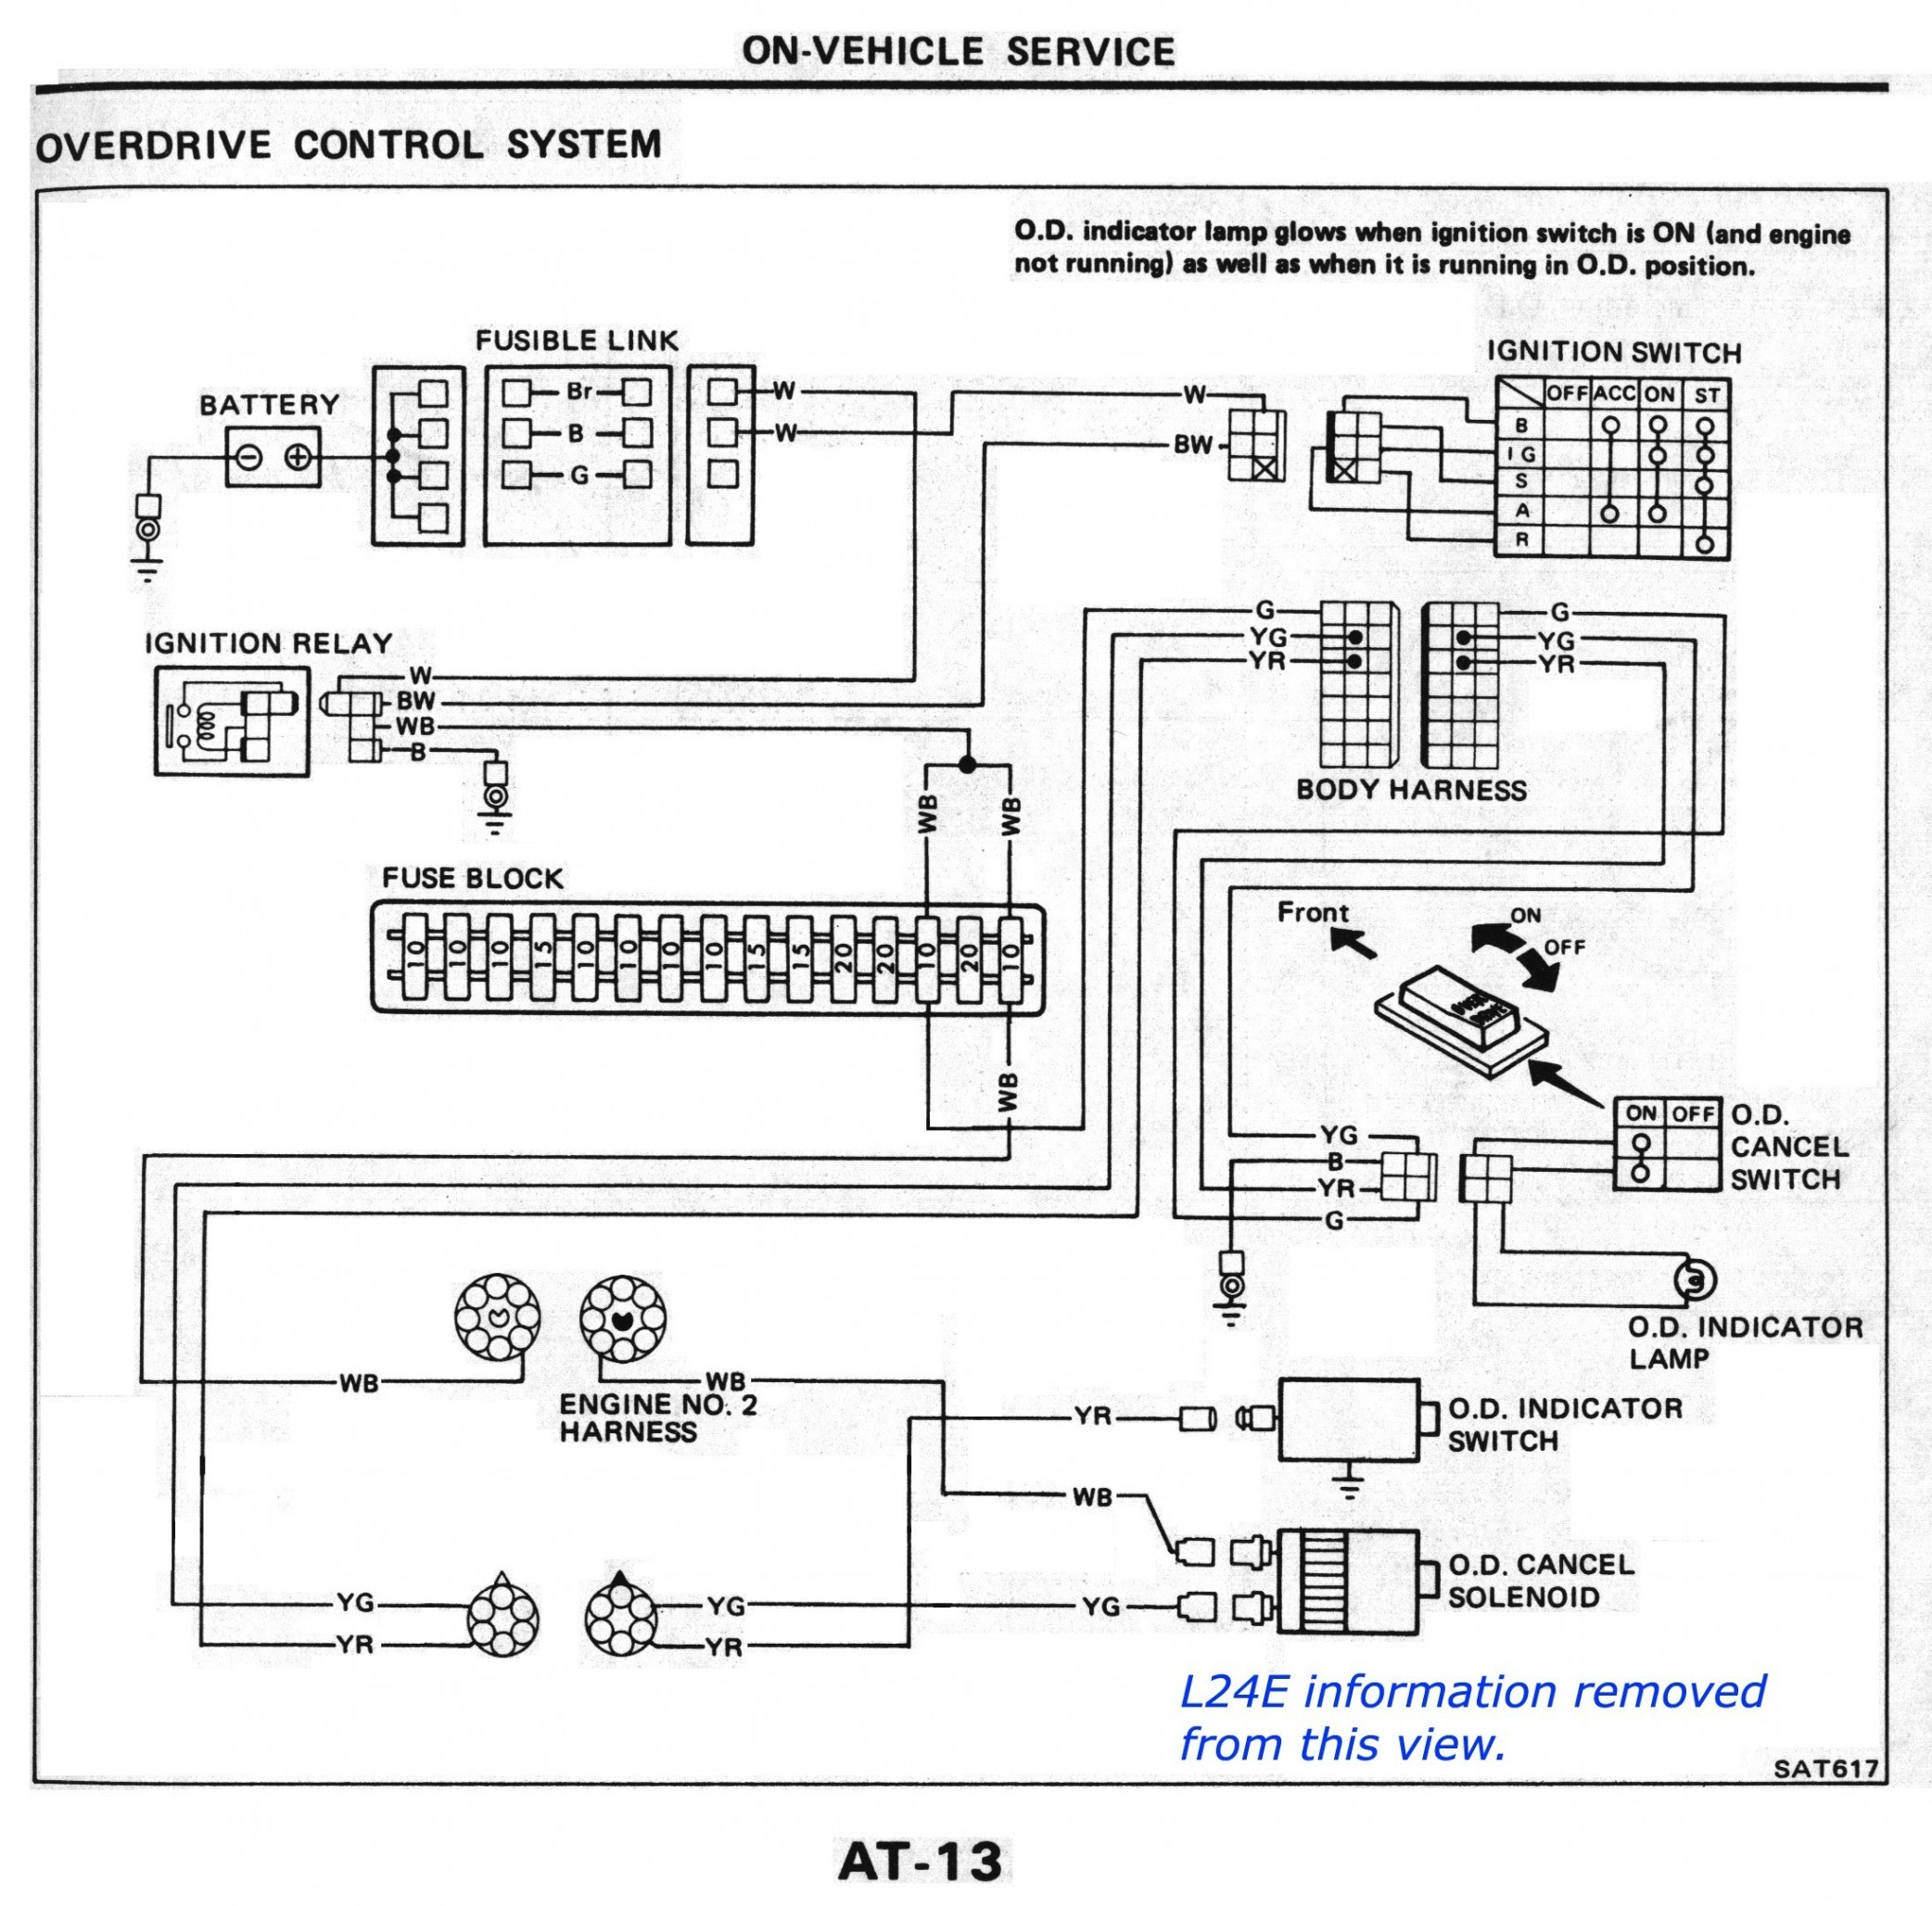 Diagram Of A Car Battery Car Battery Diagram Of Diagram Of A Car Battery